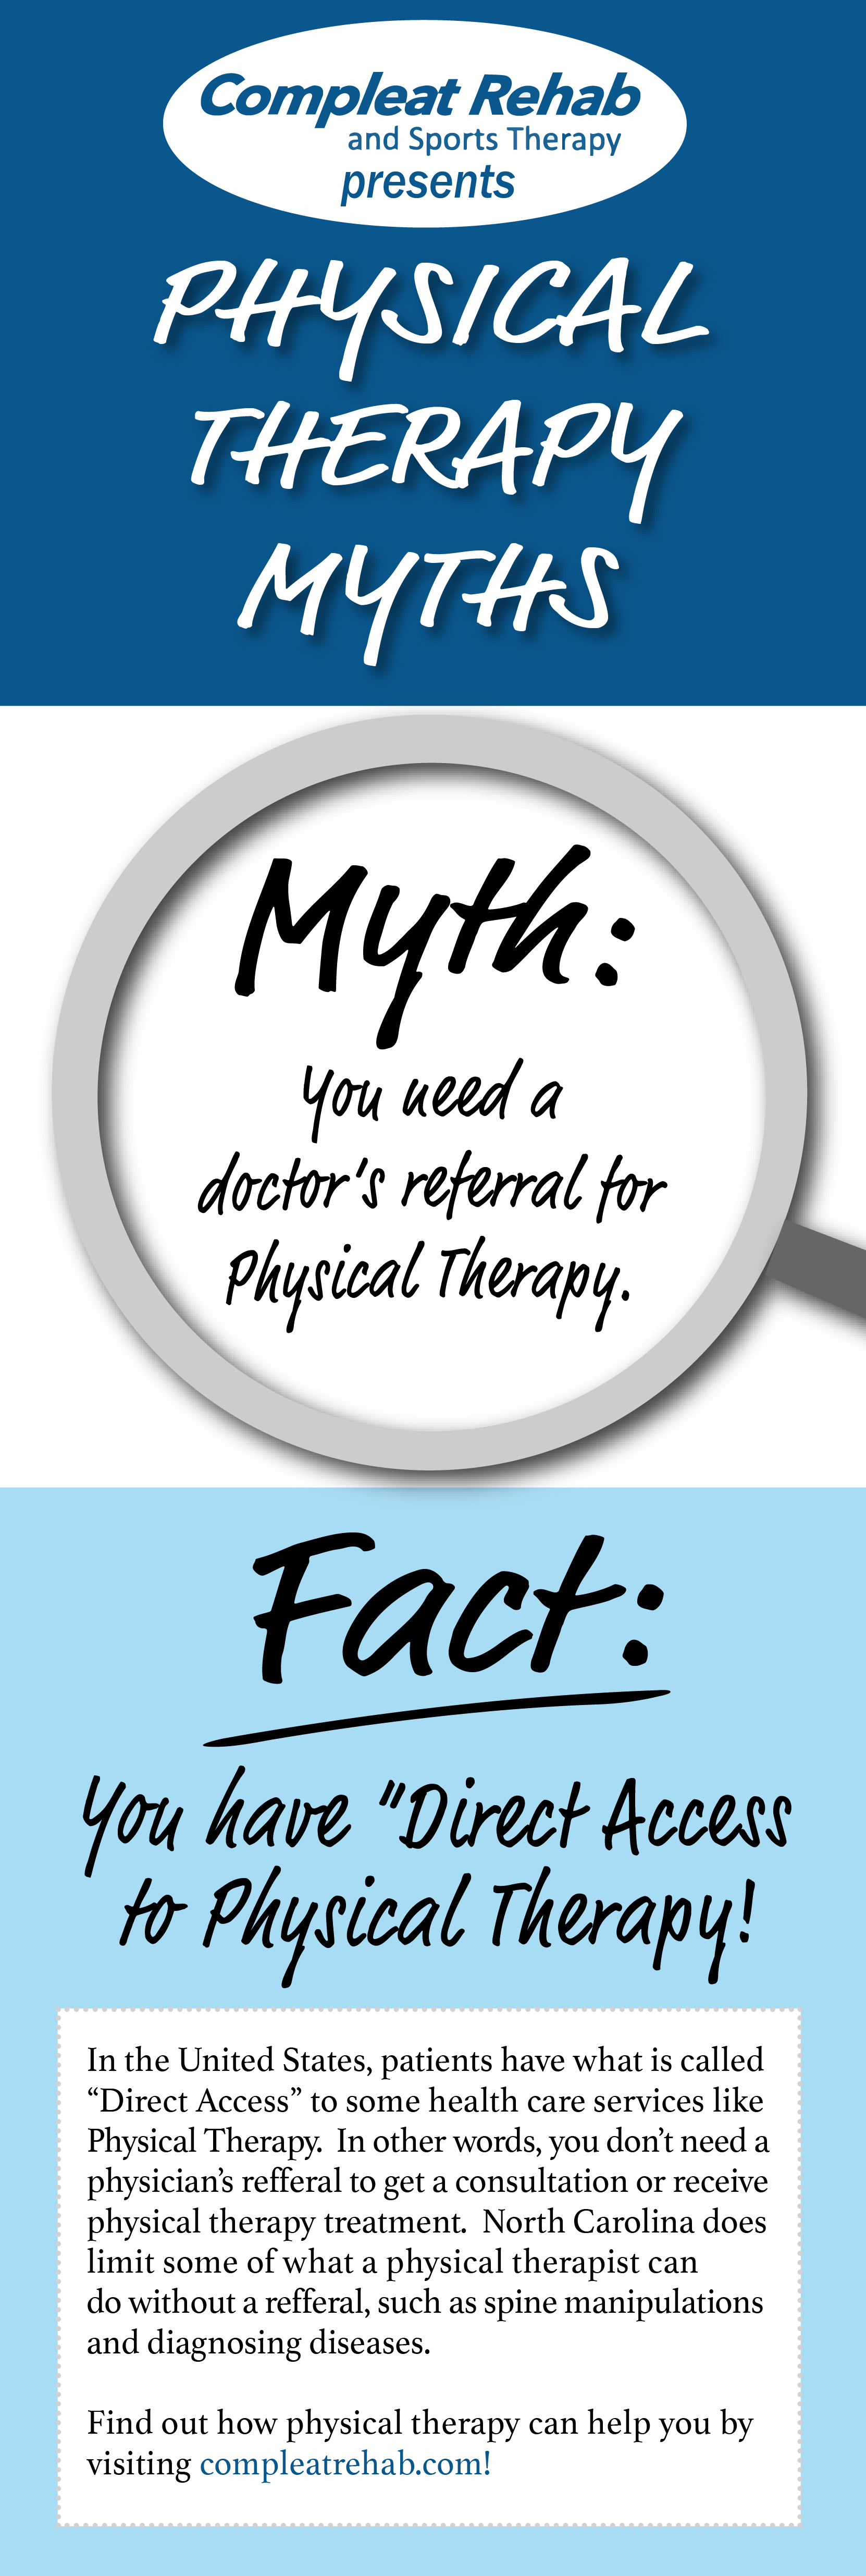 Physical Therapy Myths busted! You do NOT need a doctor's